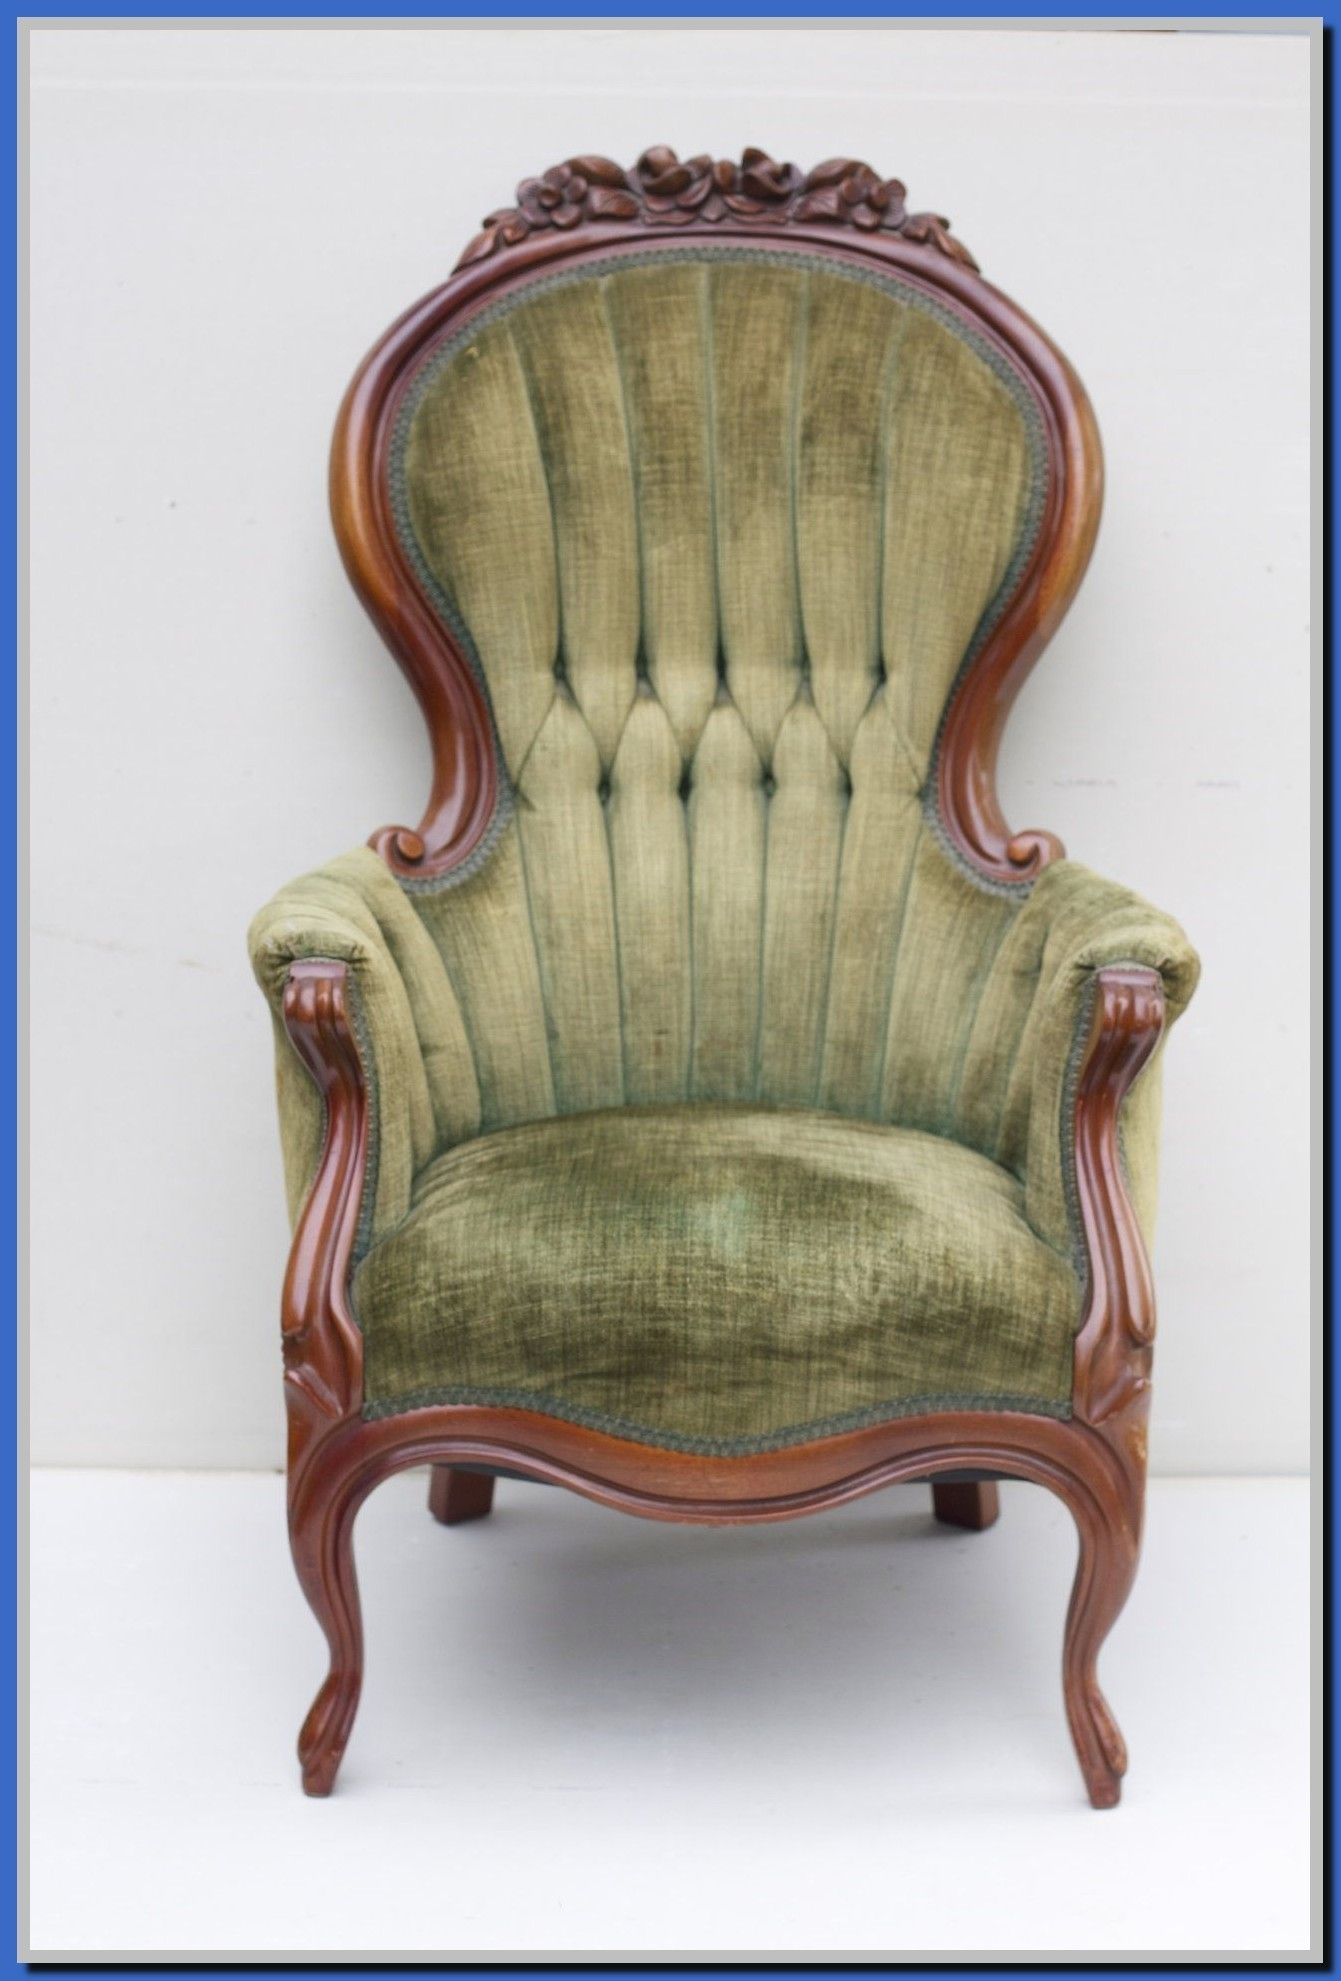 Charmant Antique High Back Chairs For Sale